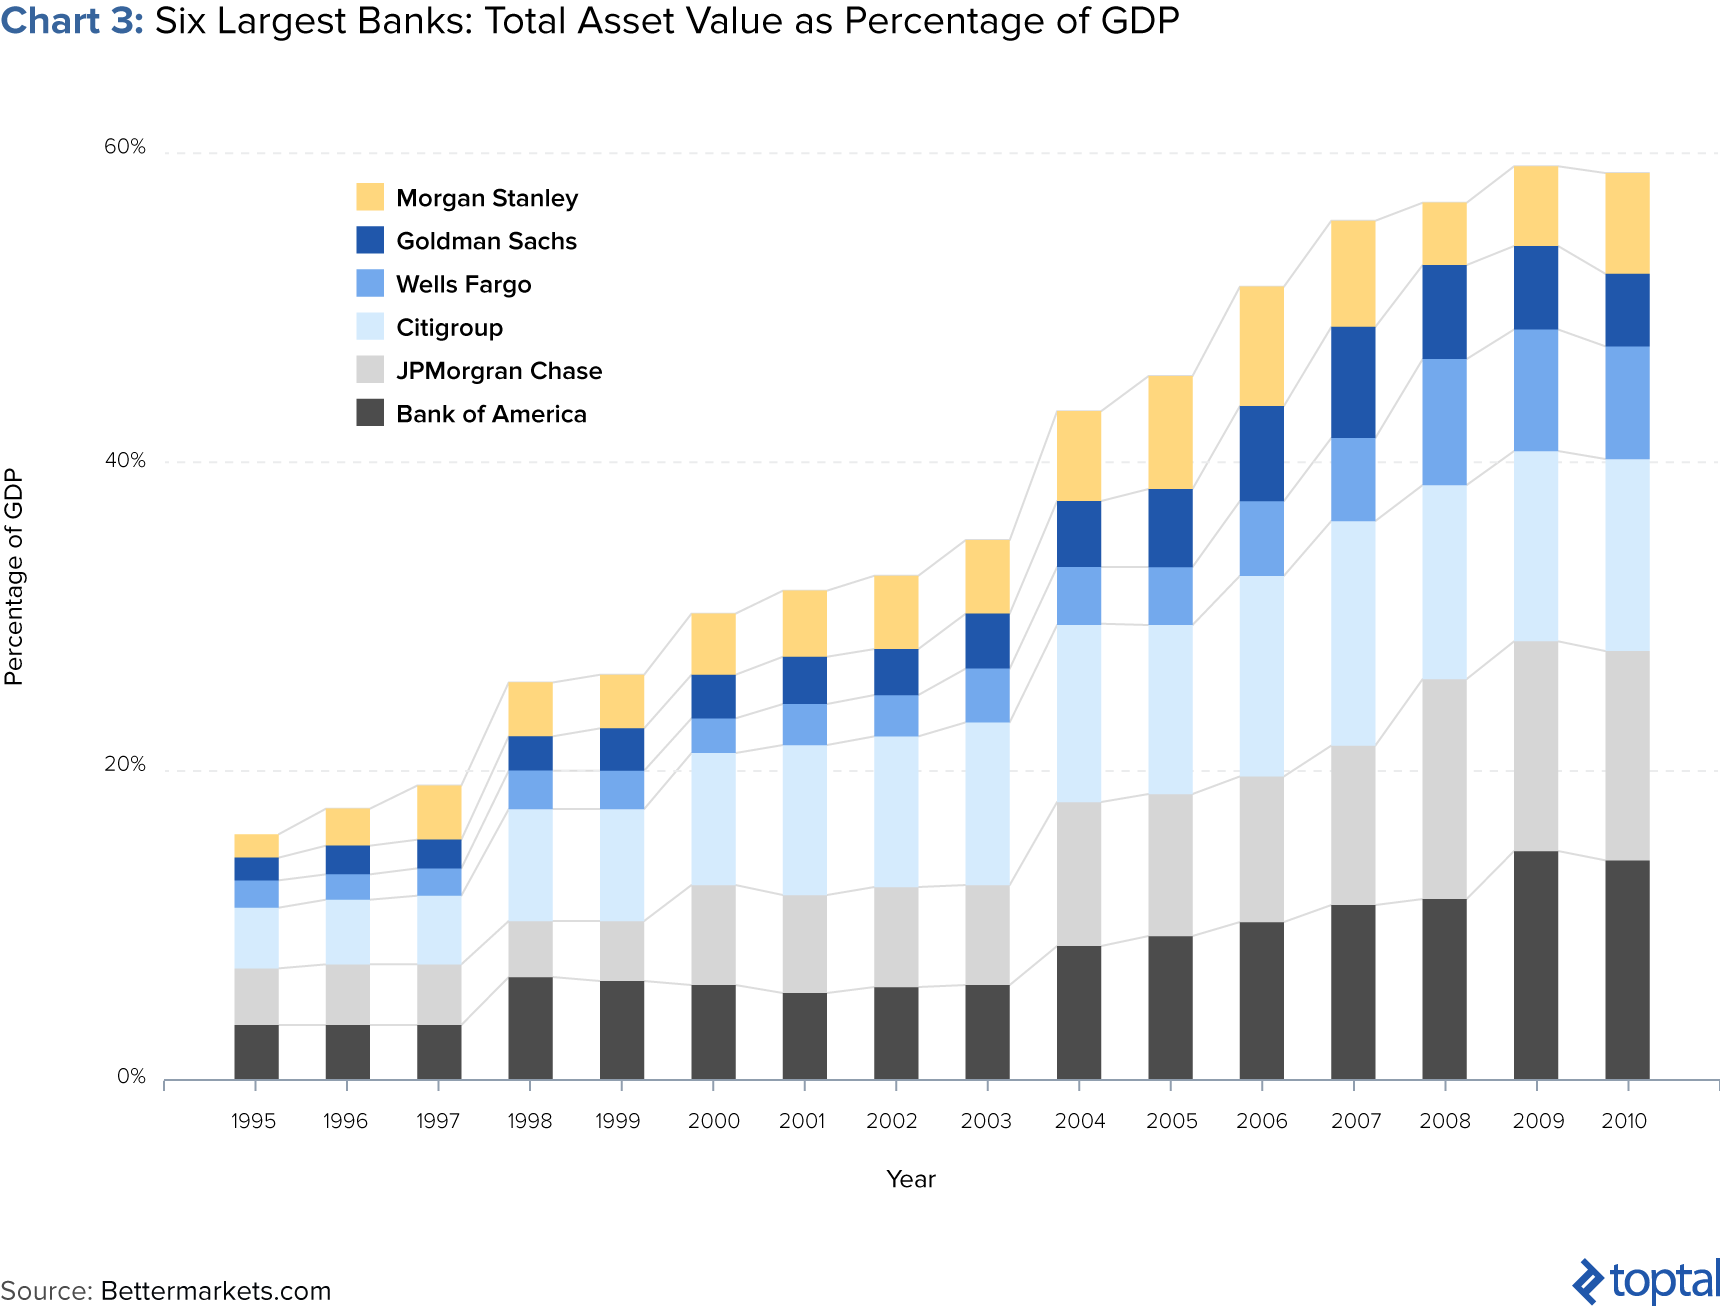 Chart 3: Six Largest Banks: Total Asset Value as Percentage of GDP